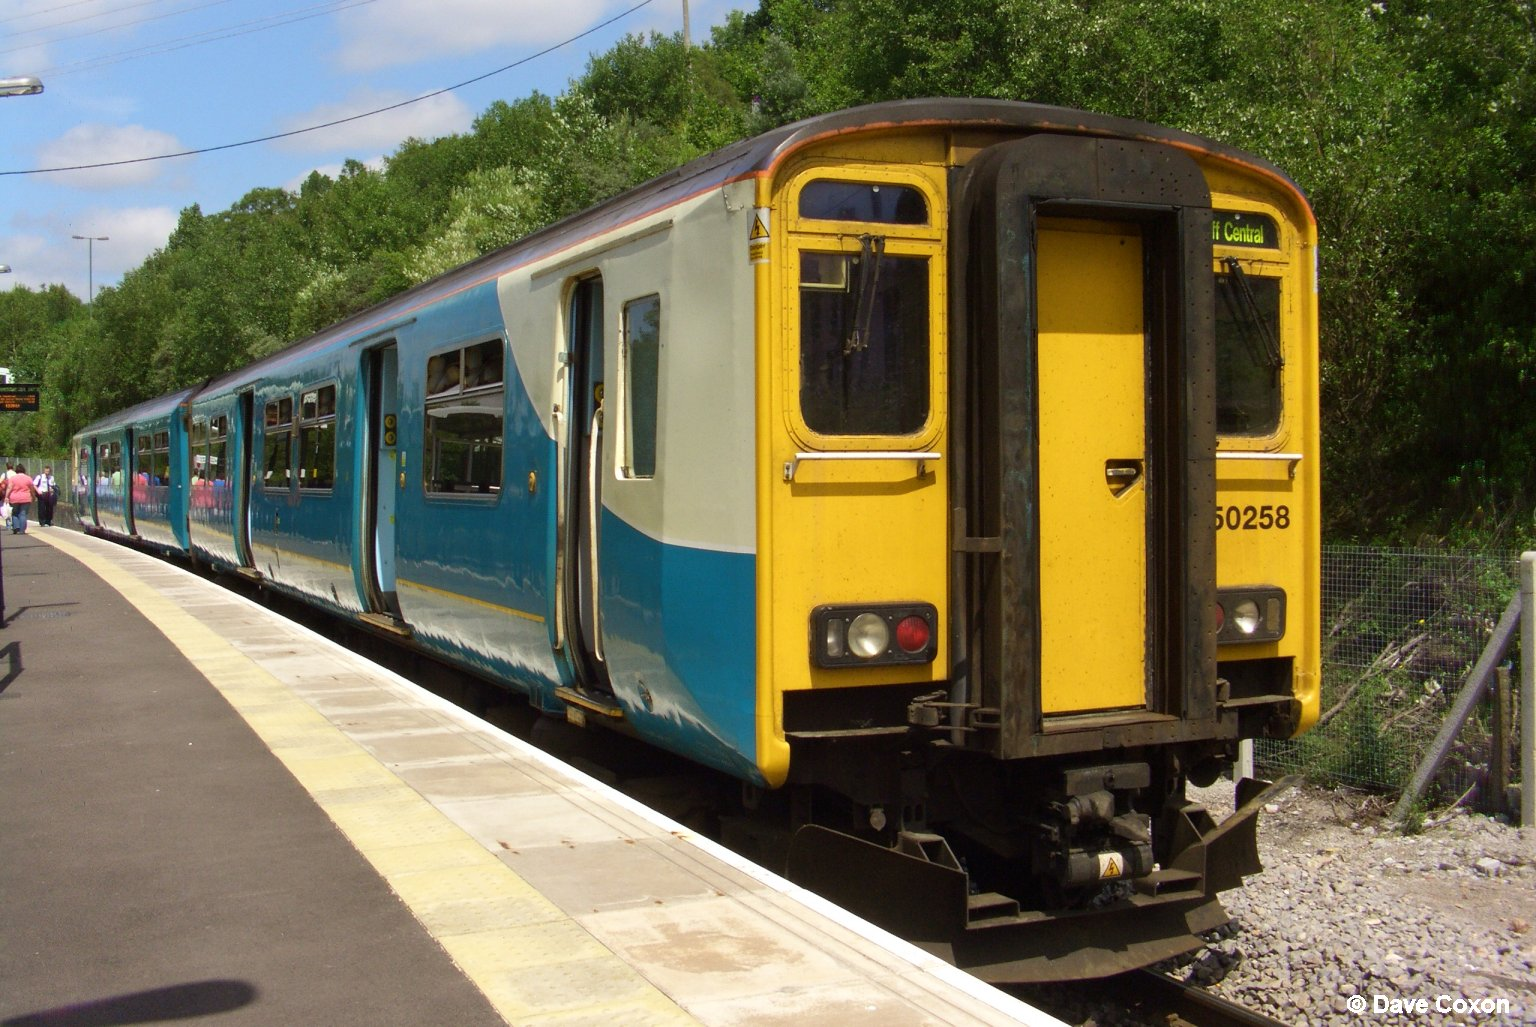 150258 in Arriva Trains Wales